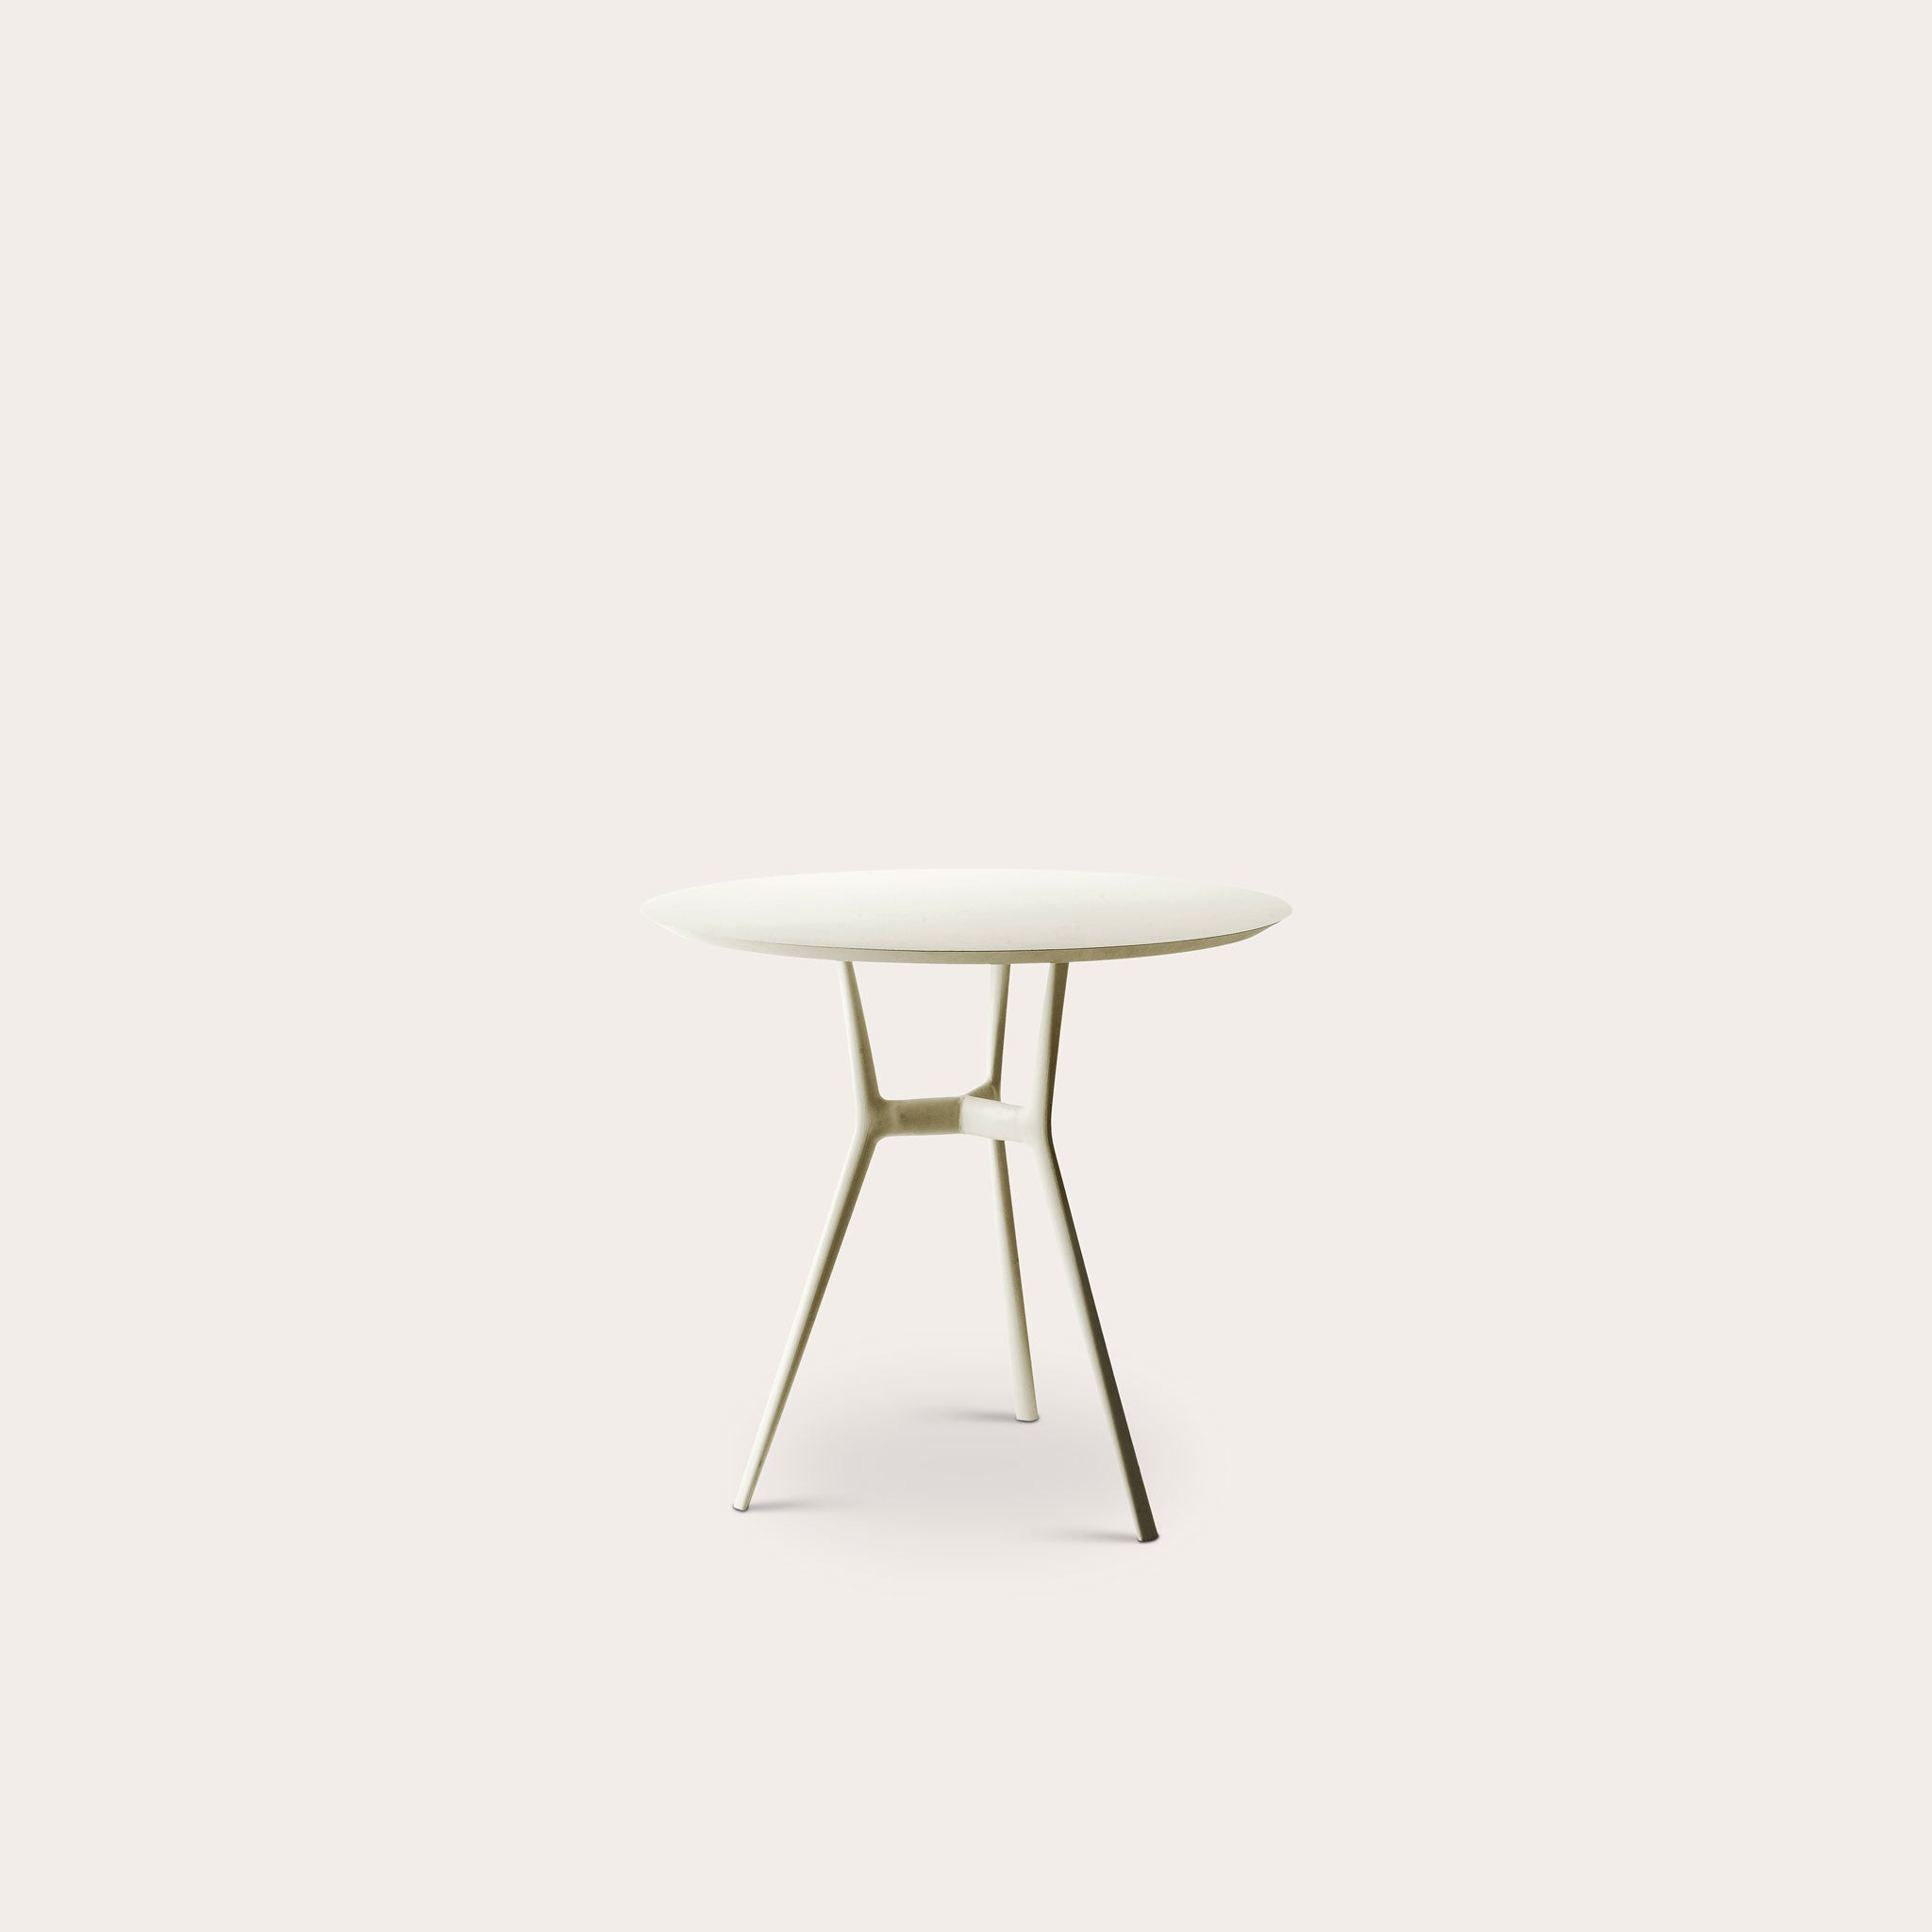 BRANCH Bistro Table Round Outdoor Altherr Lievore Molina Designer Furniture Sku: 007-200-10751